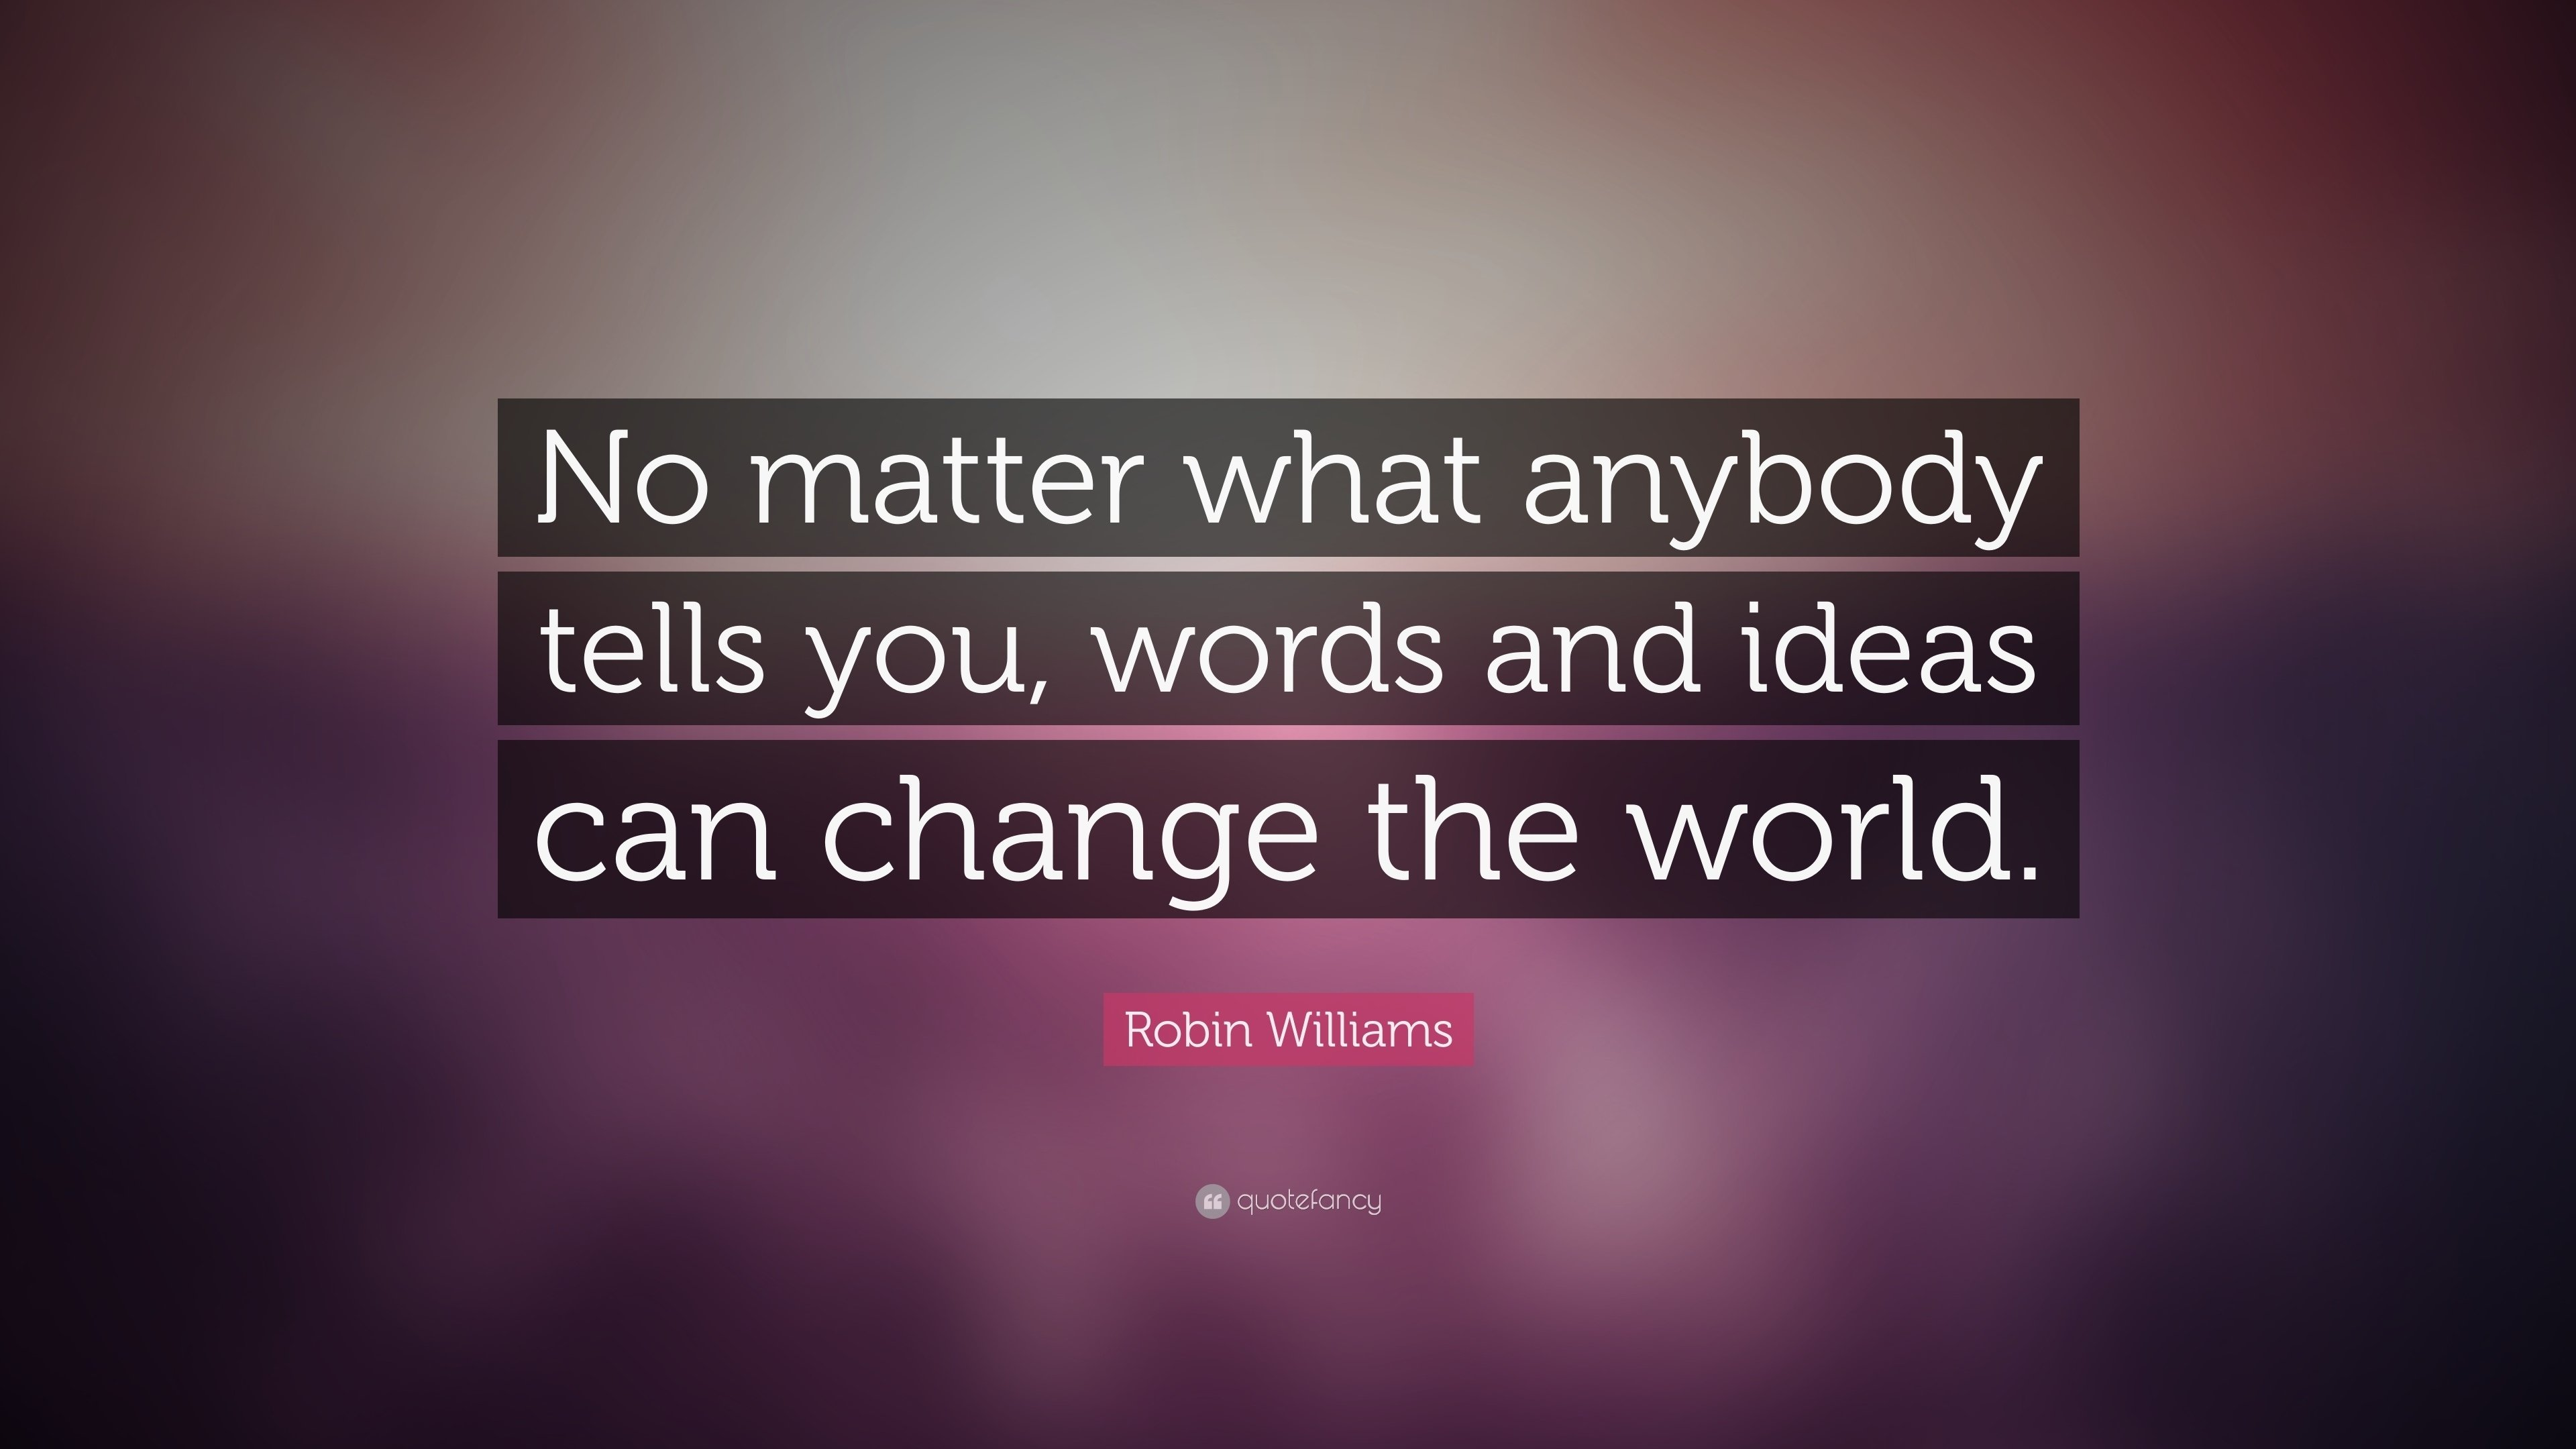 10 Lovely Words And Ideas Can Change The World robin williams quote no matter what anybody tells you words and 1 2021